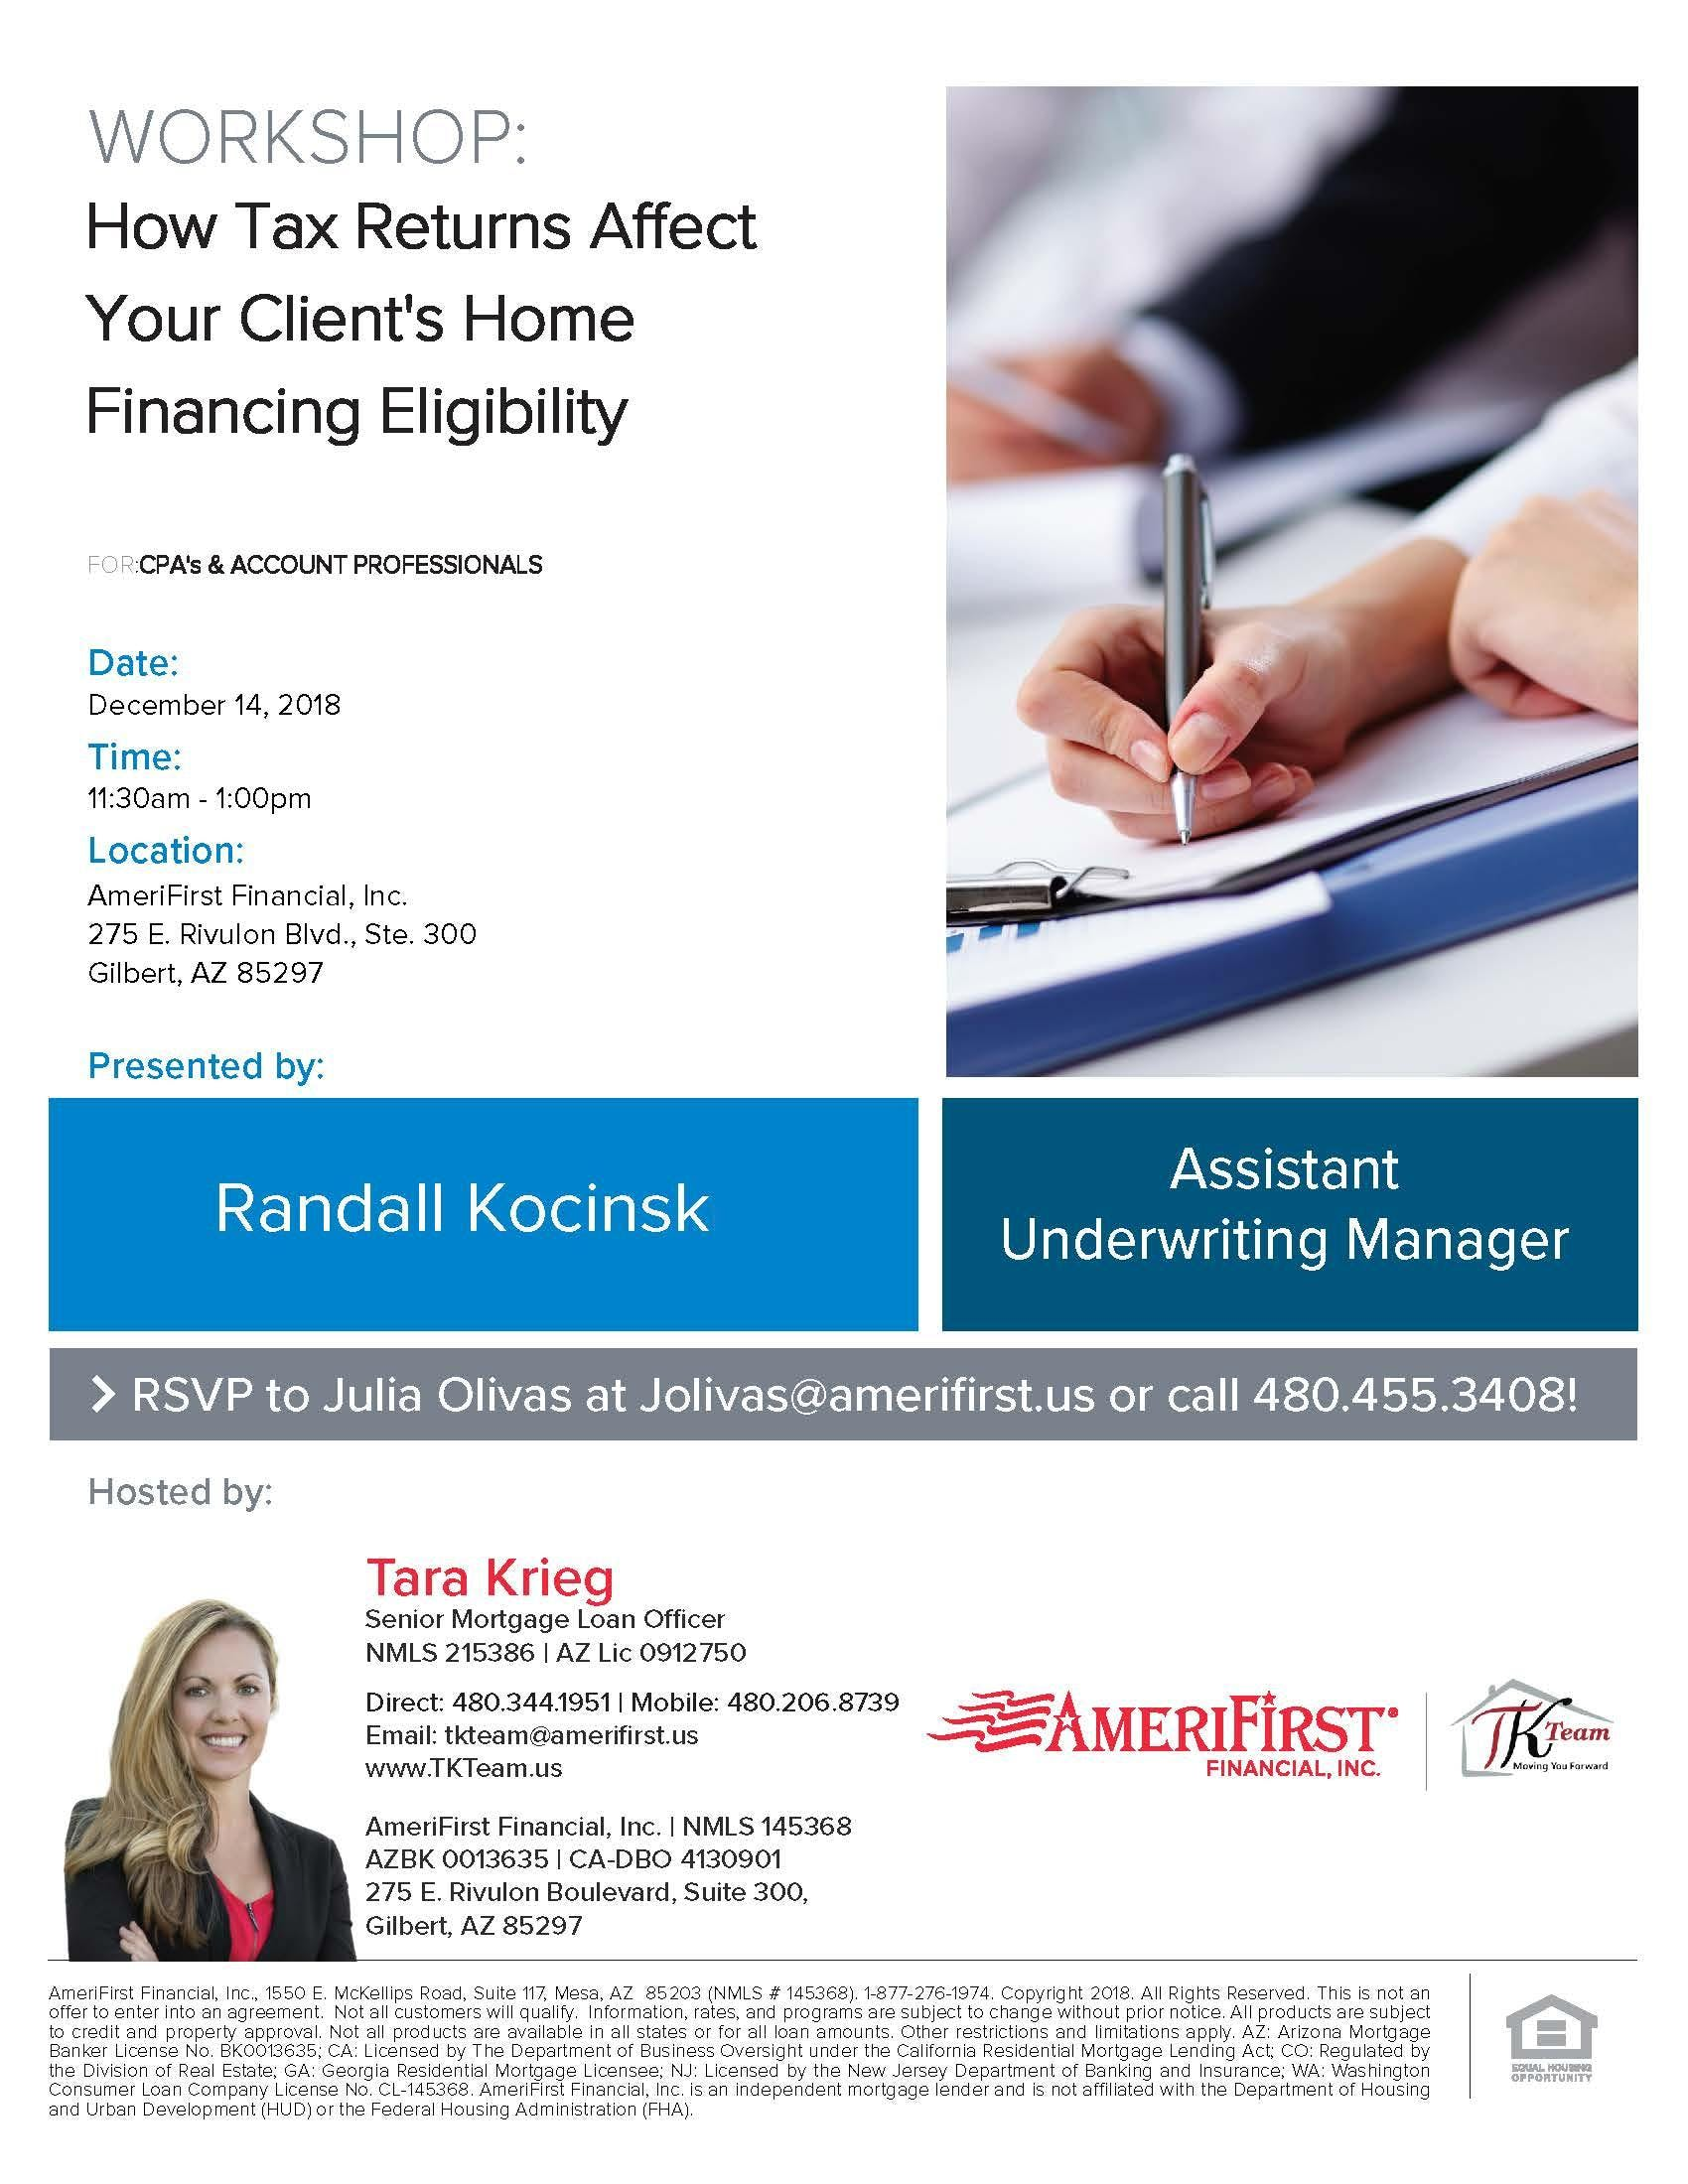 CPA Workshop Hosted by Assistant Underwriting